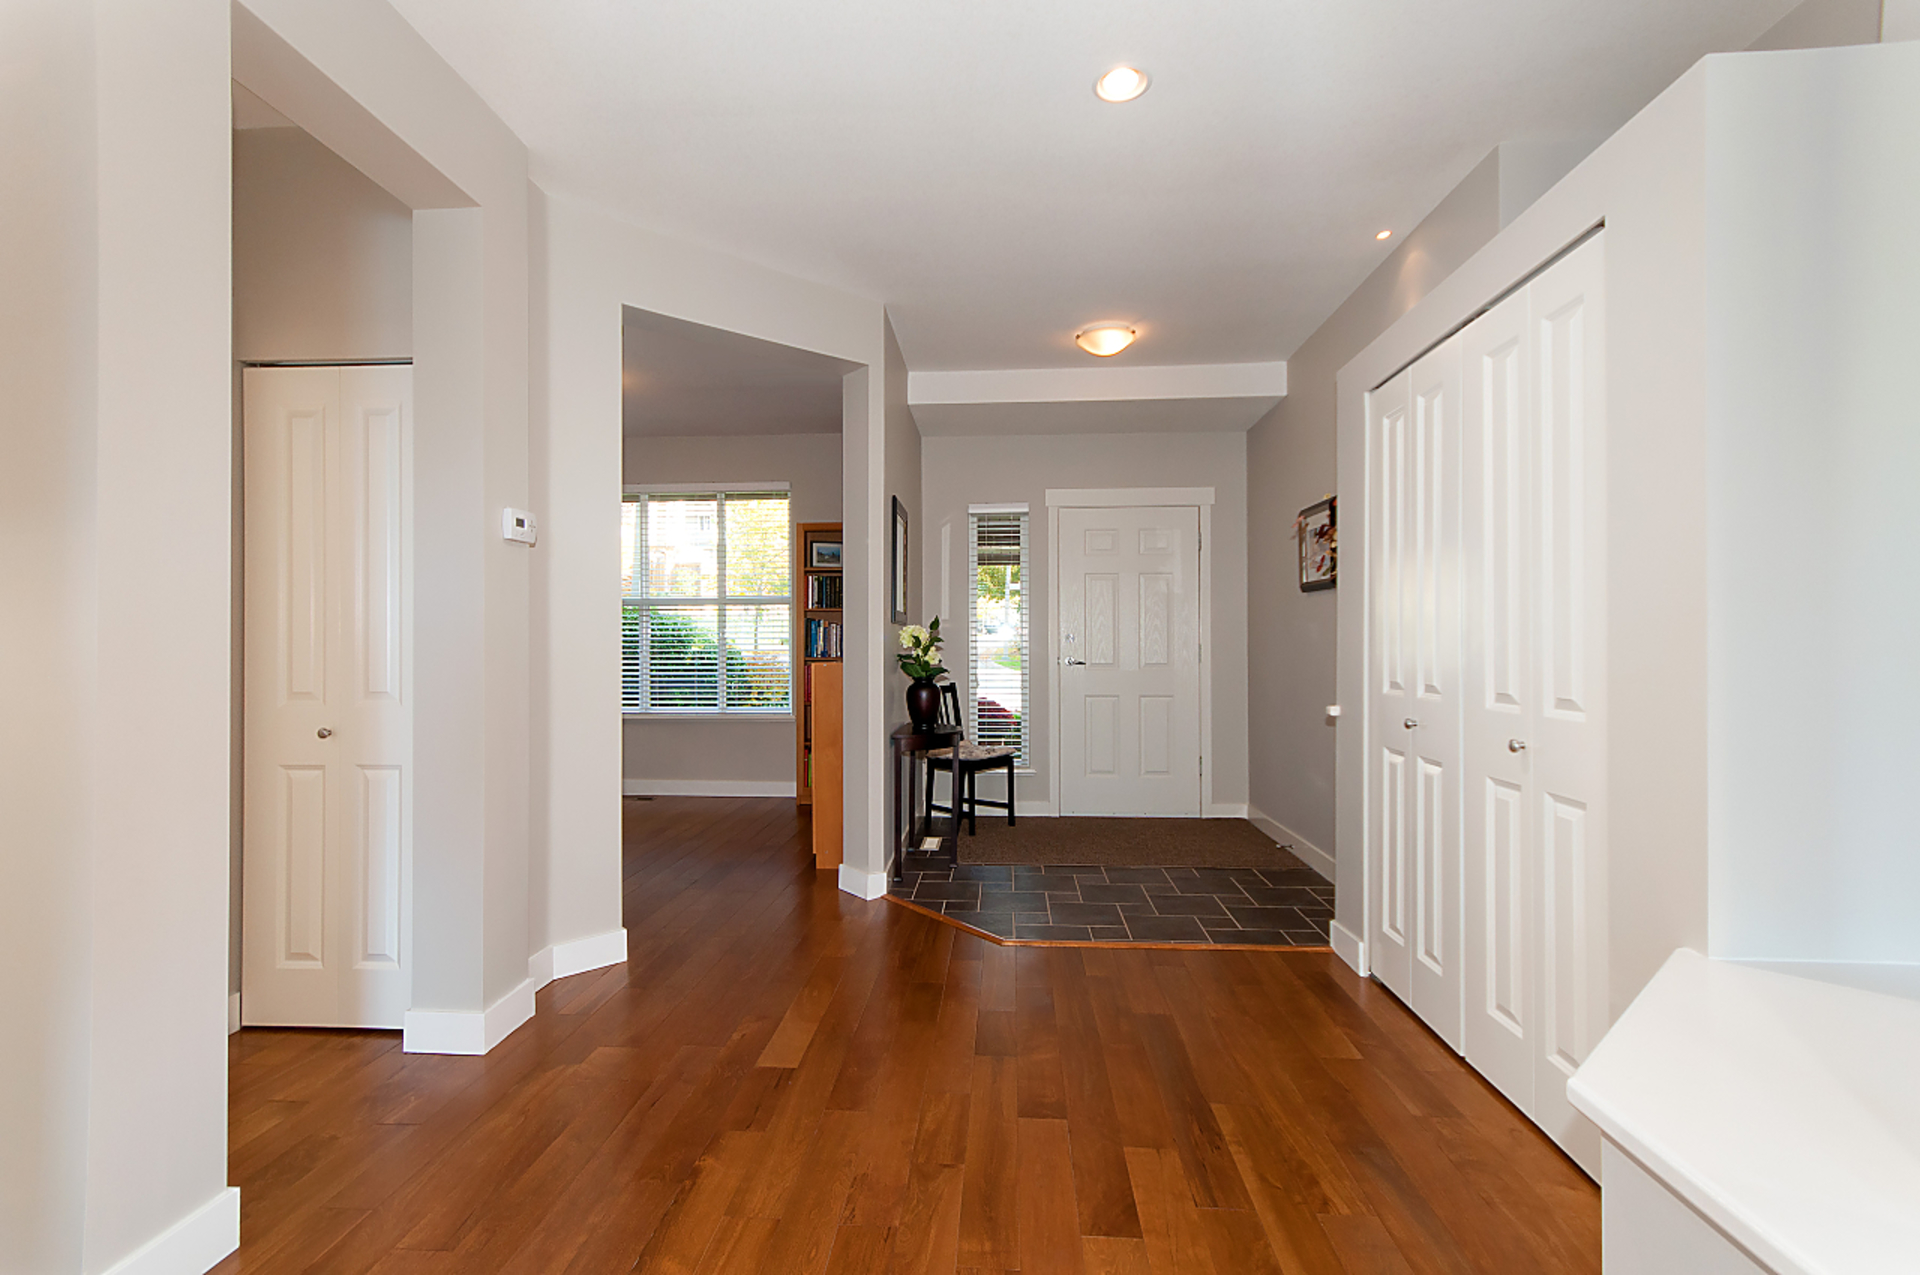 004 at 43 Maple Drive, Heritage Woods PM, Port Moody